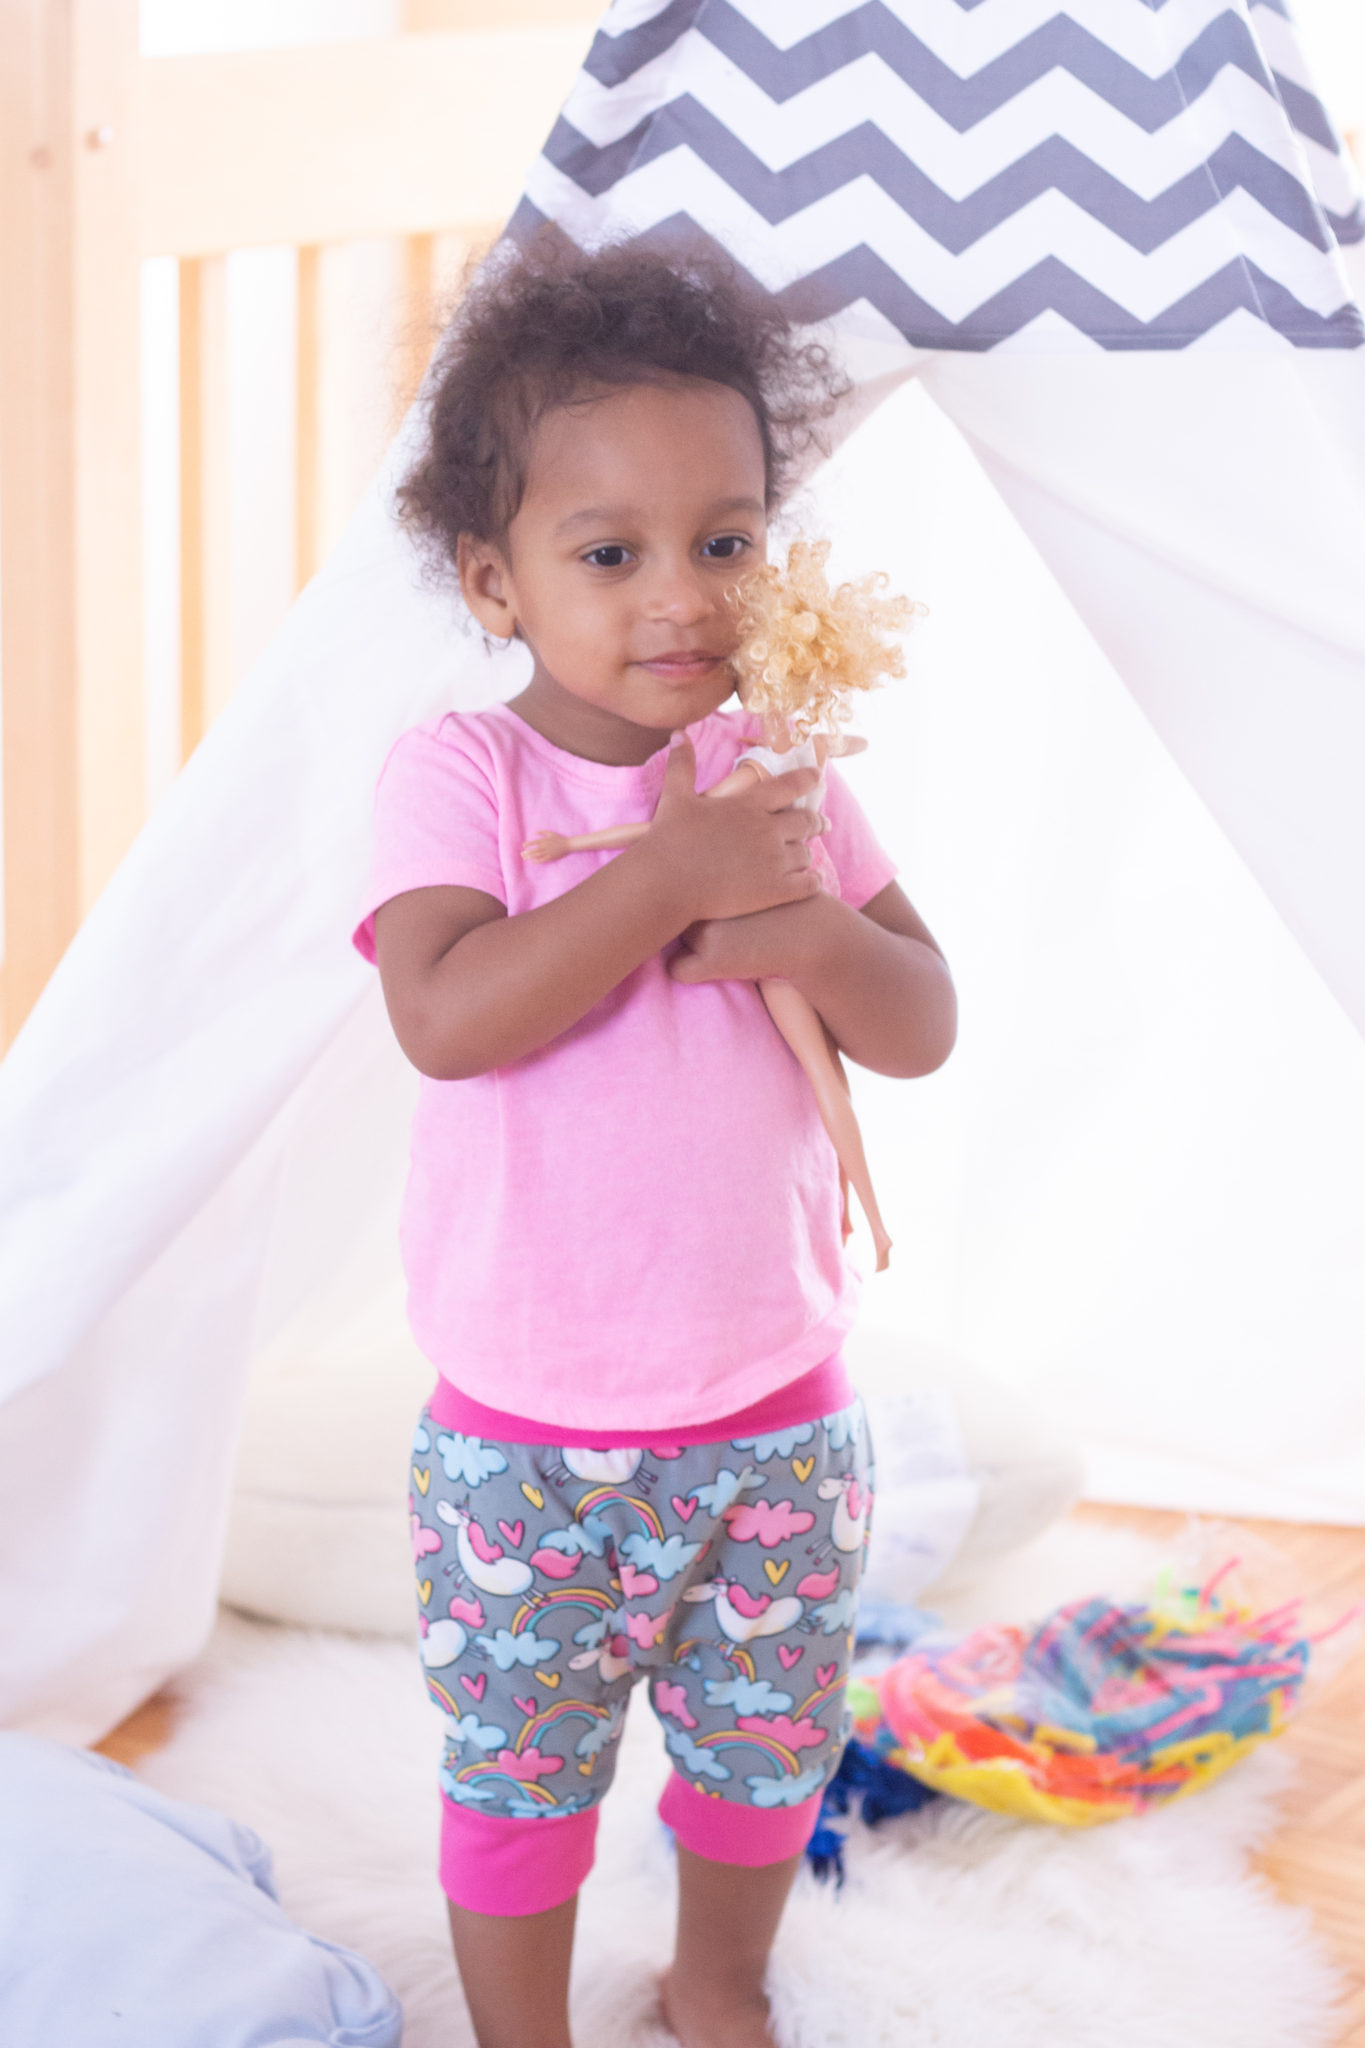 How To Encourage Independent Play In Toddlers | Philips Avent Digital Monitor